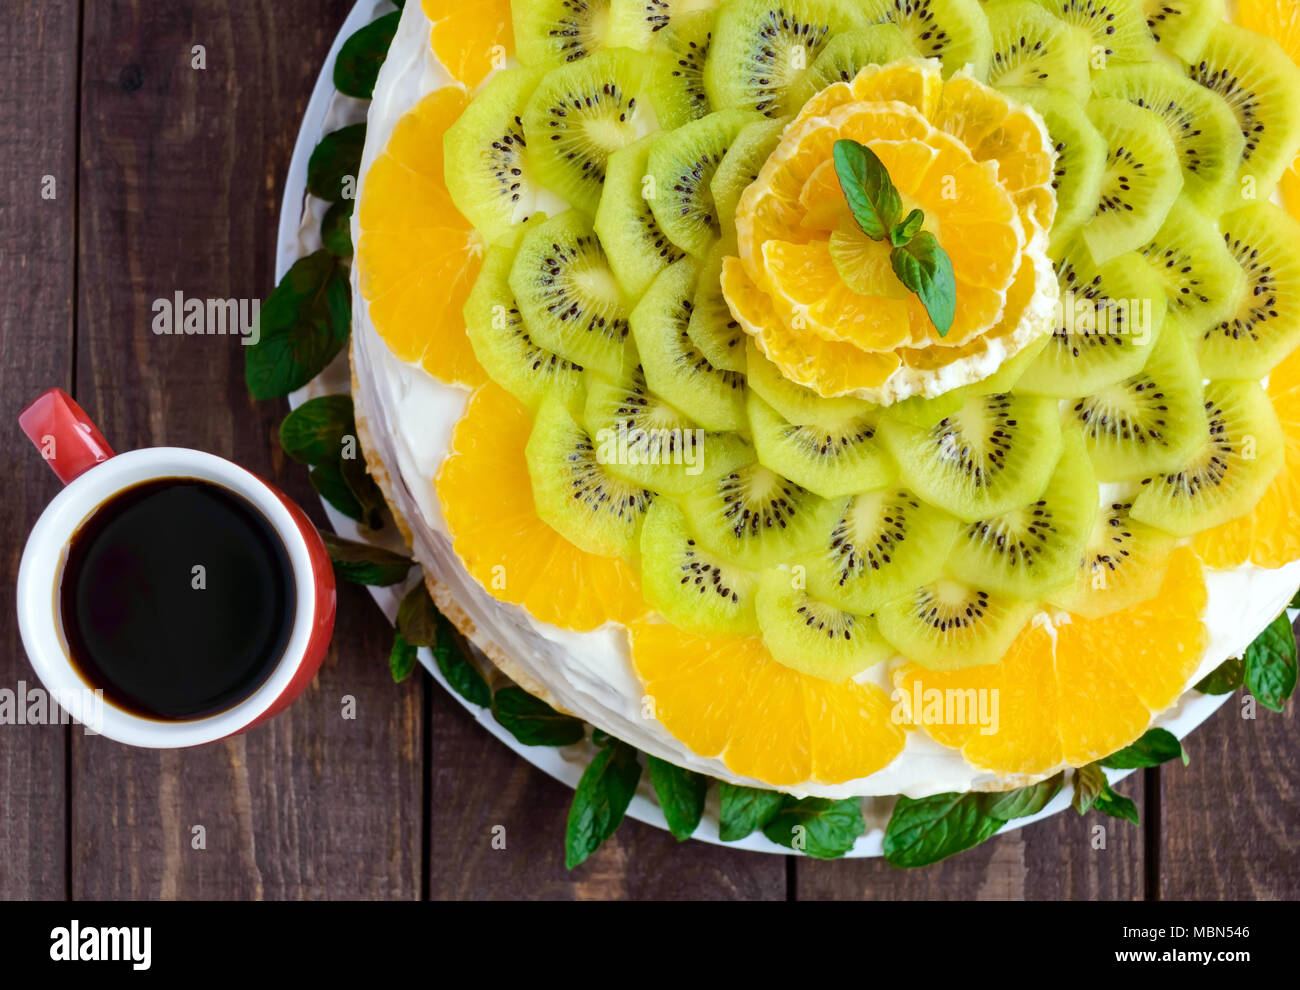 Bright round festive fruit cake decorated with kiwi, orange, mint and a cup of coffee. - Stock Image